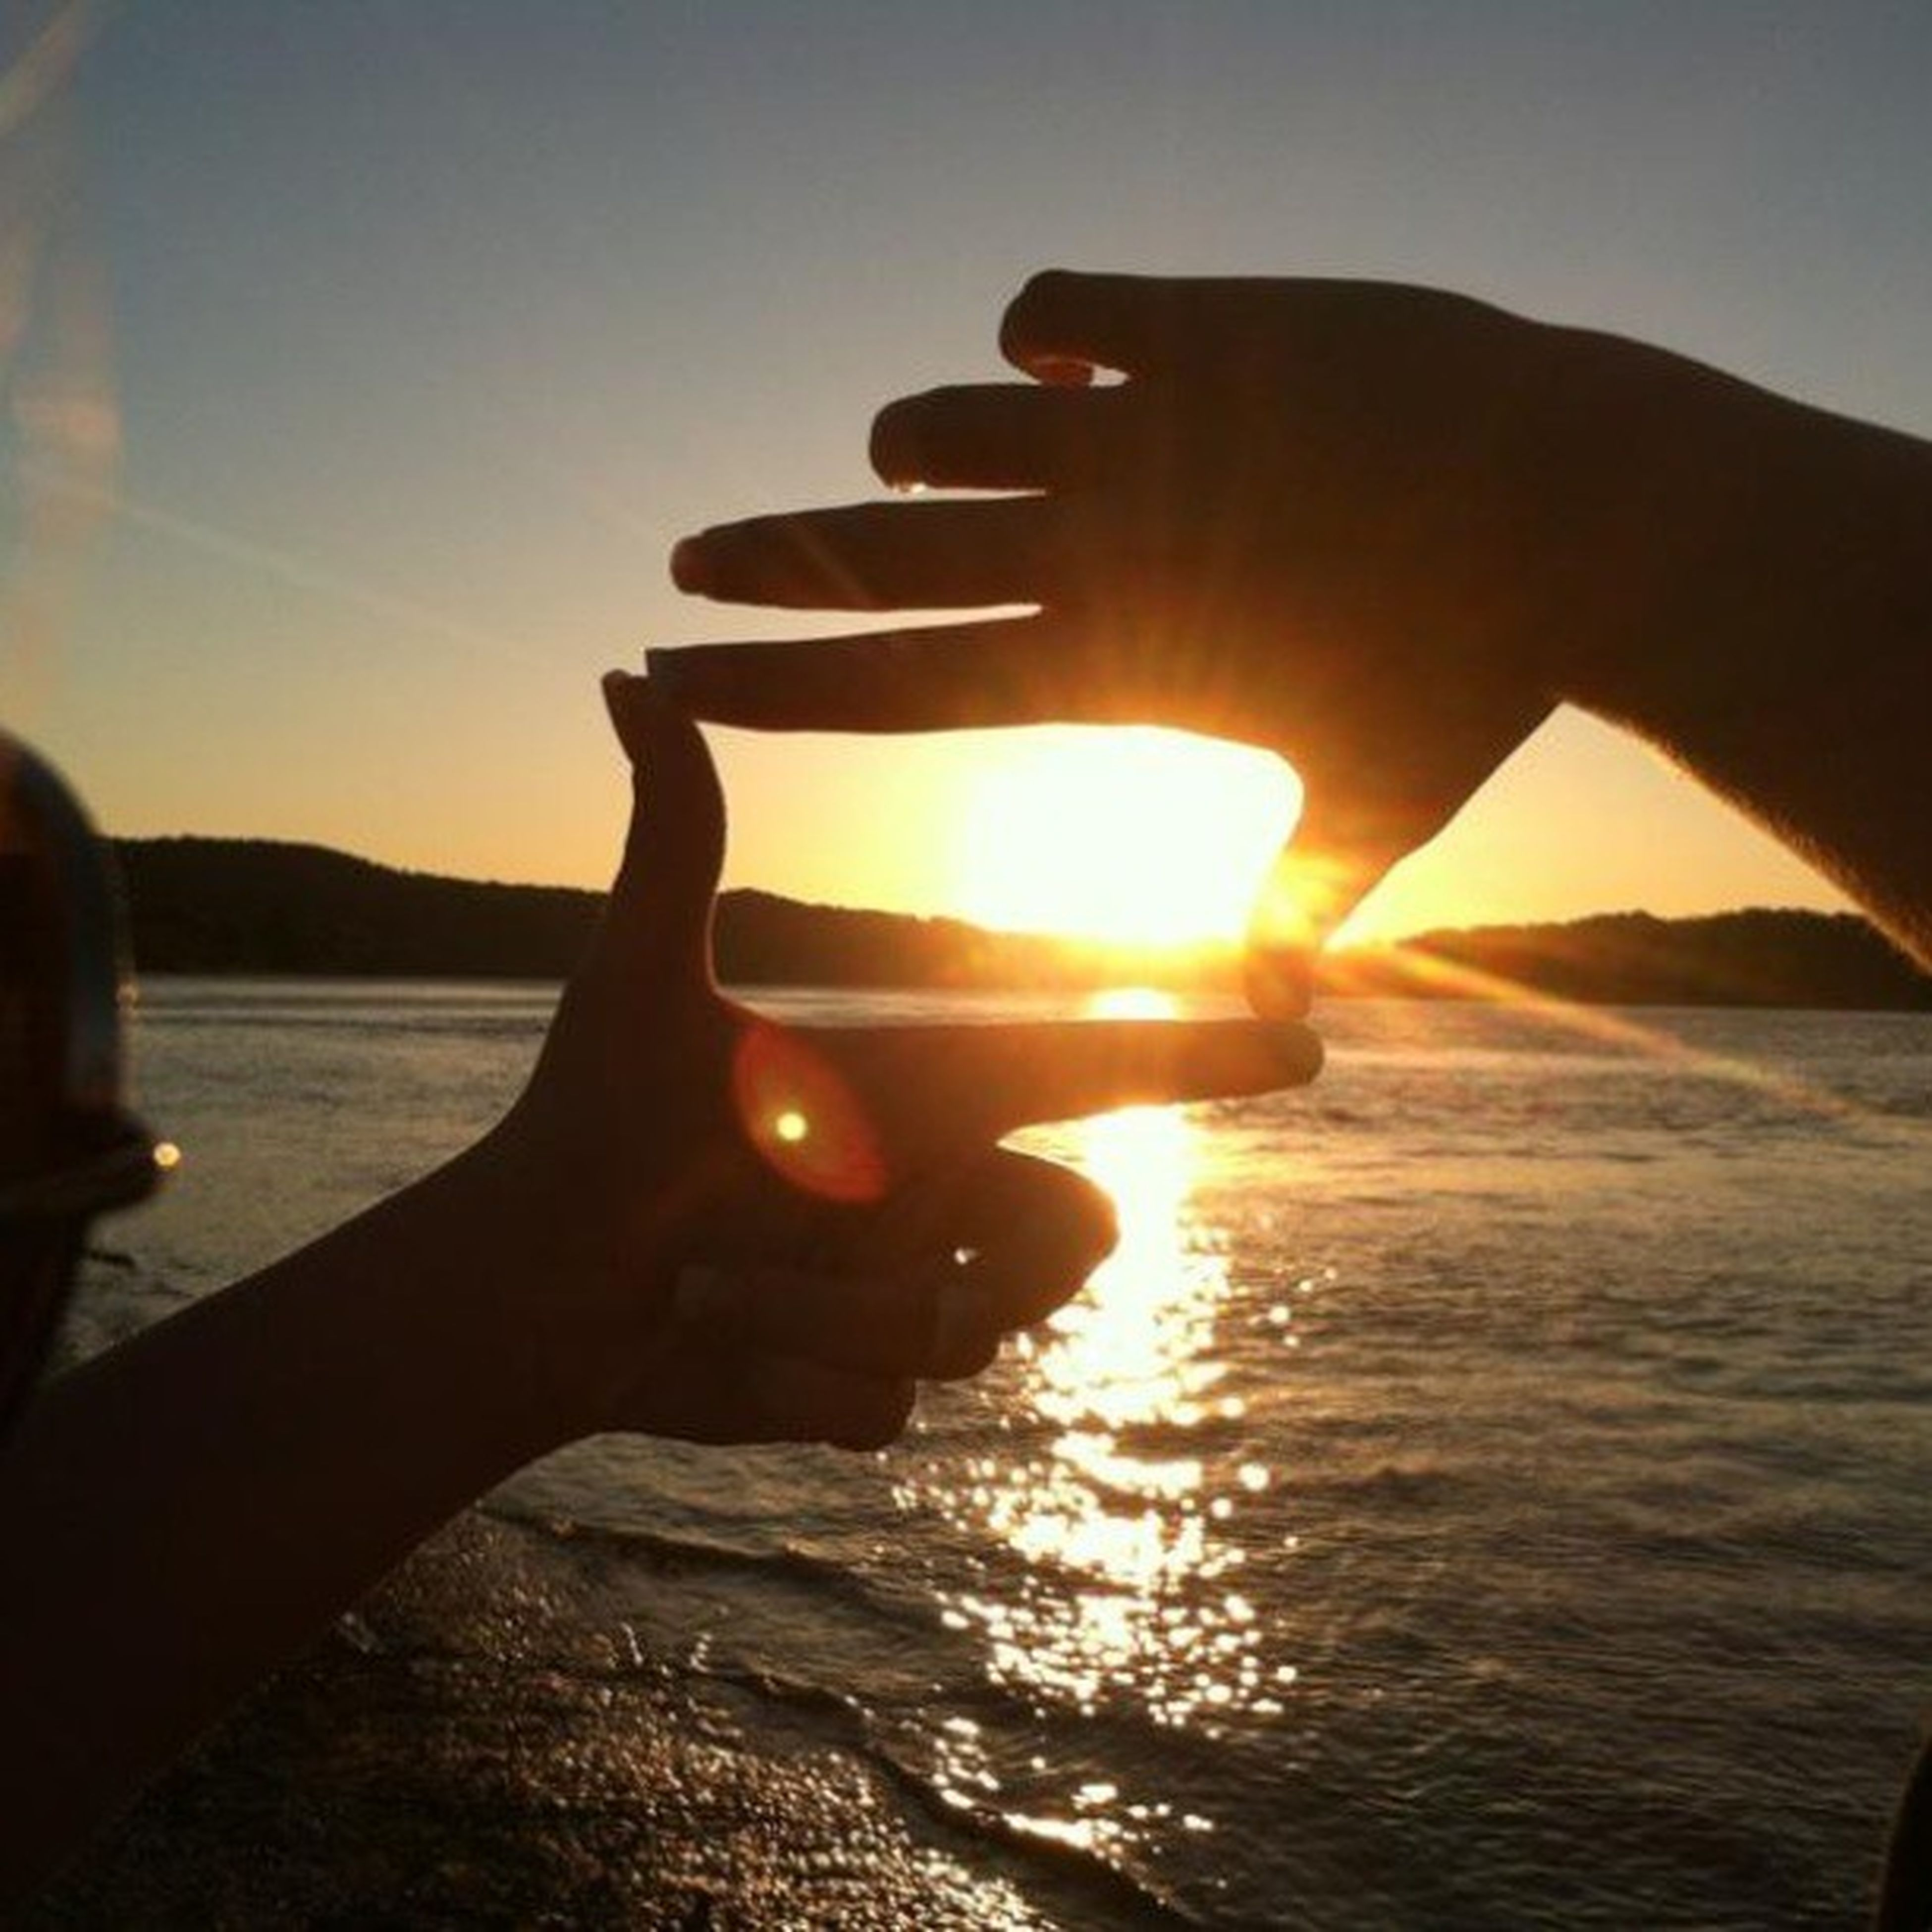 sunset, sun, water, sea, person, part of, sunlight, silhouette, sky, reflection, cropped, lens flare, sunbeam, holding, lifestyles, leisure activity, unrecognizable person